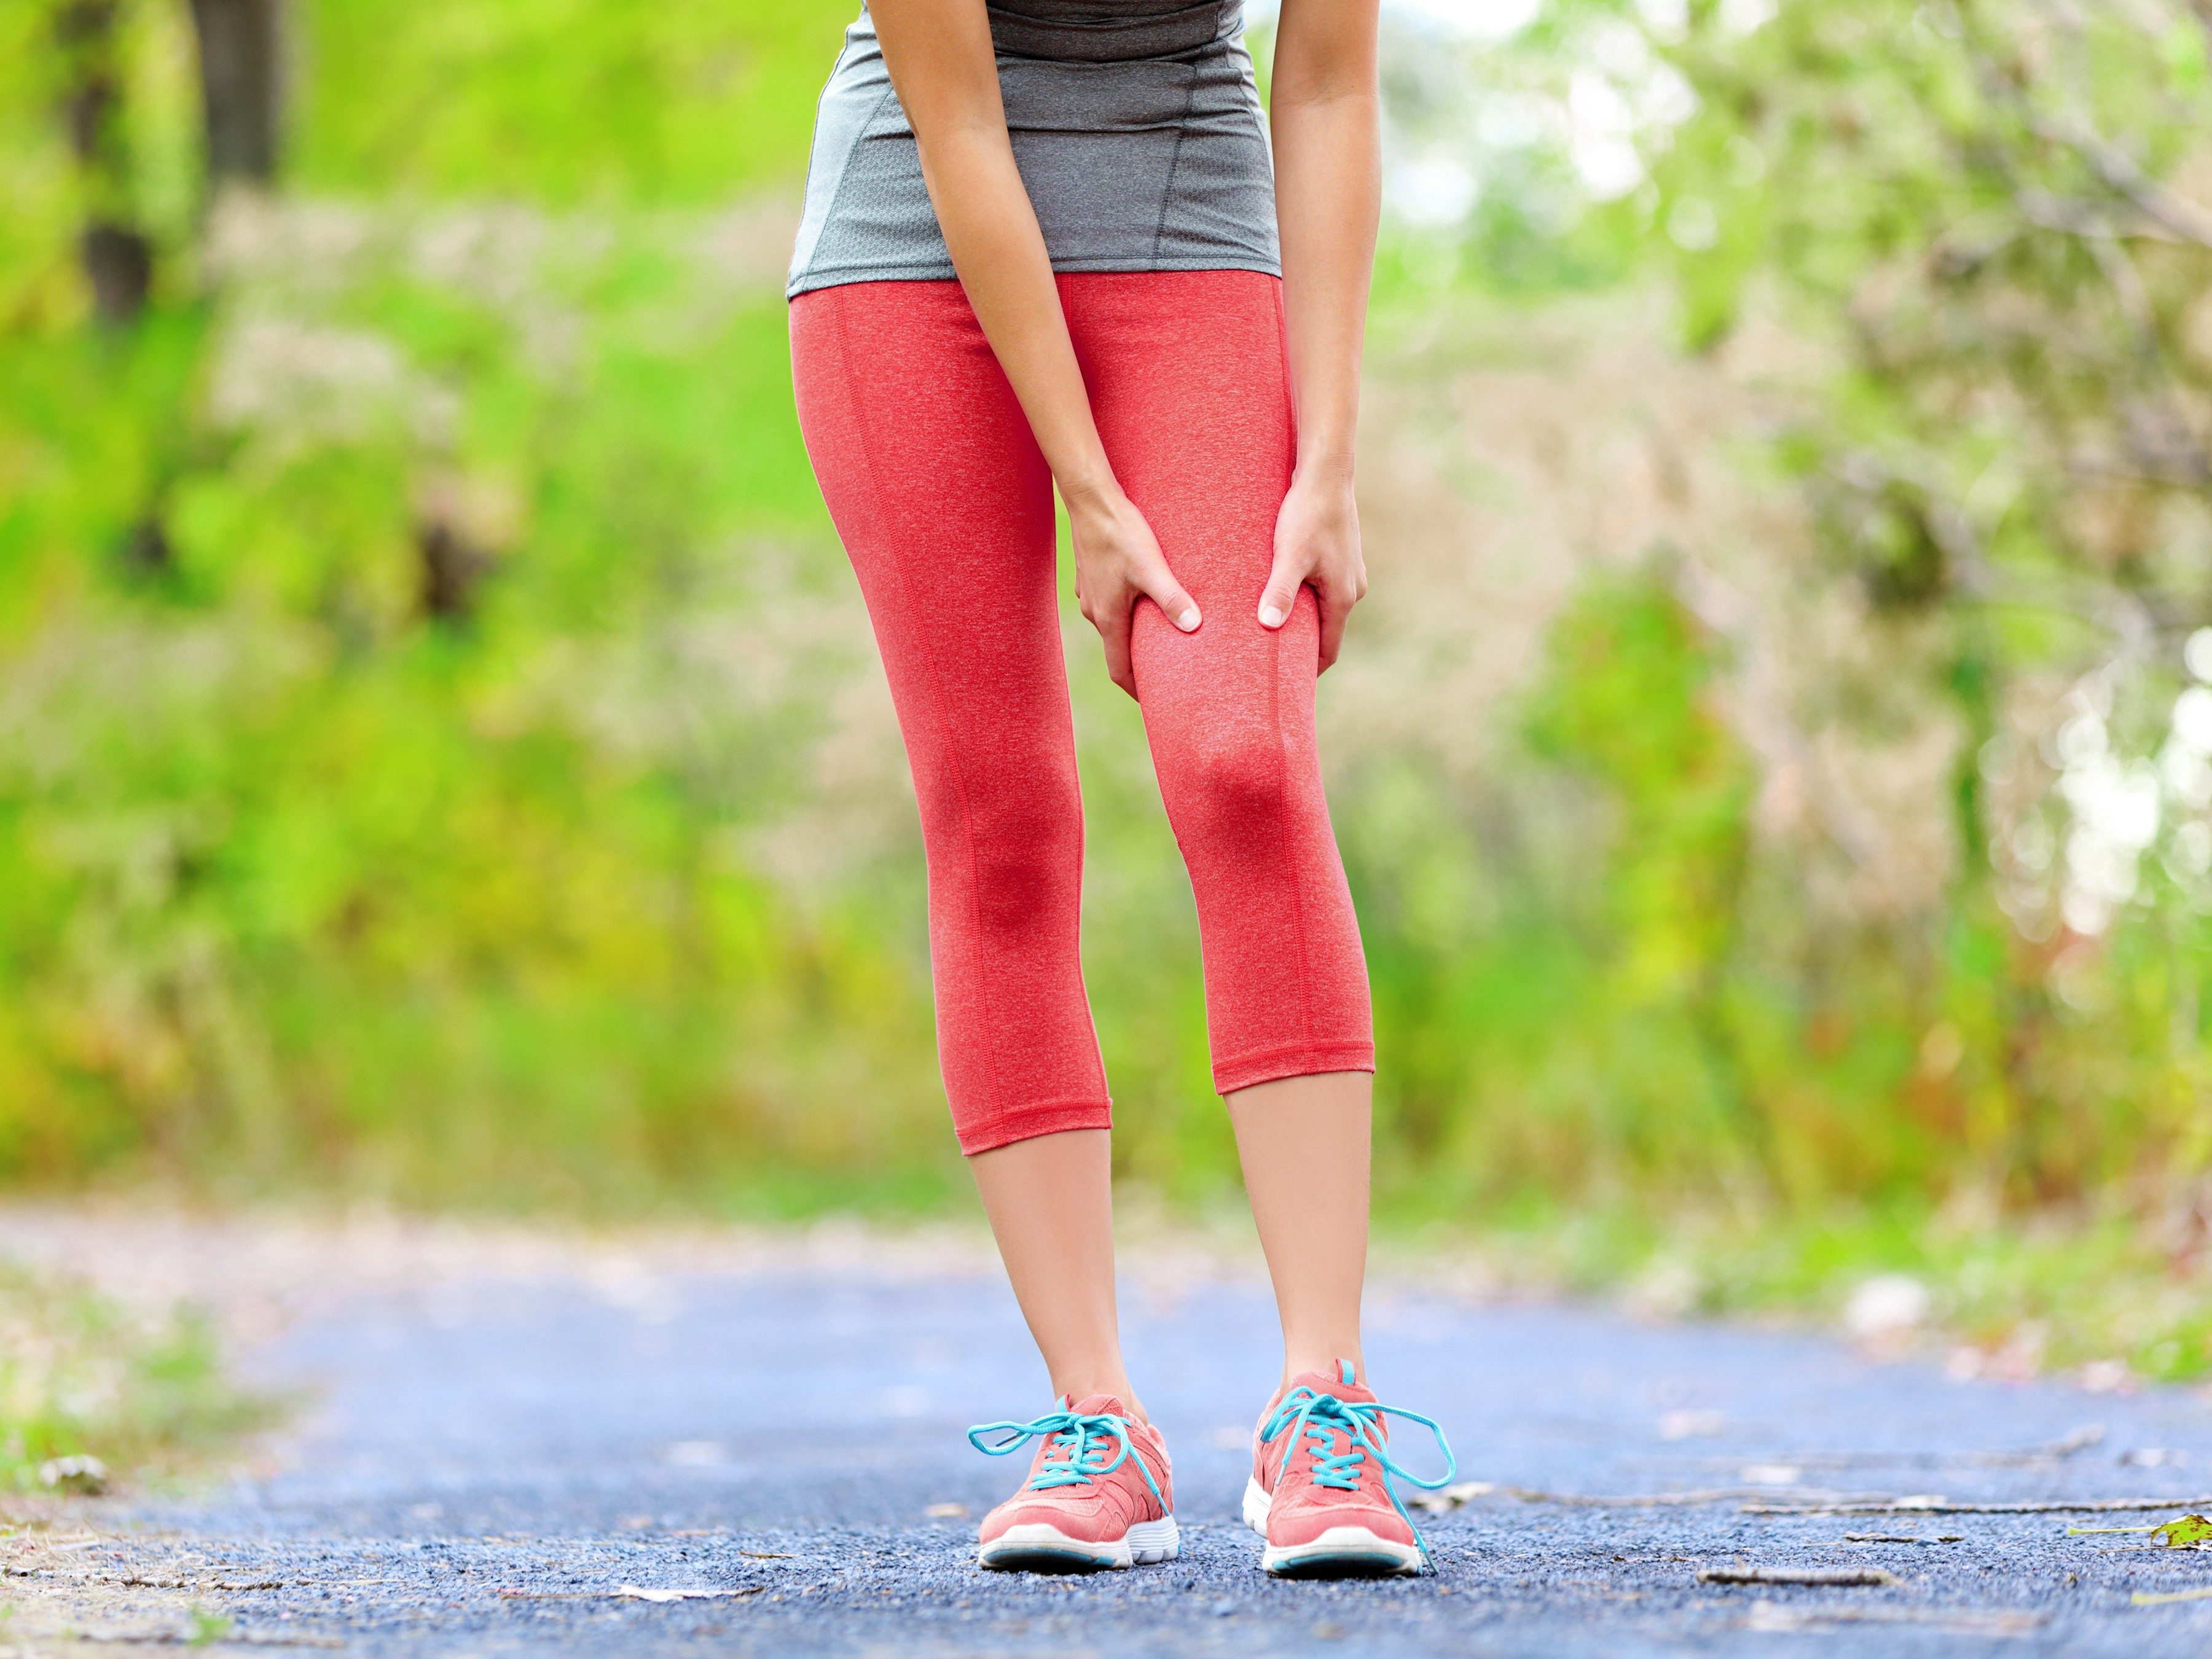 Dealing with delayed-onset muscle soreness